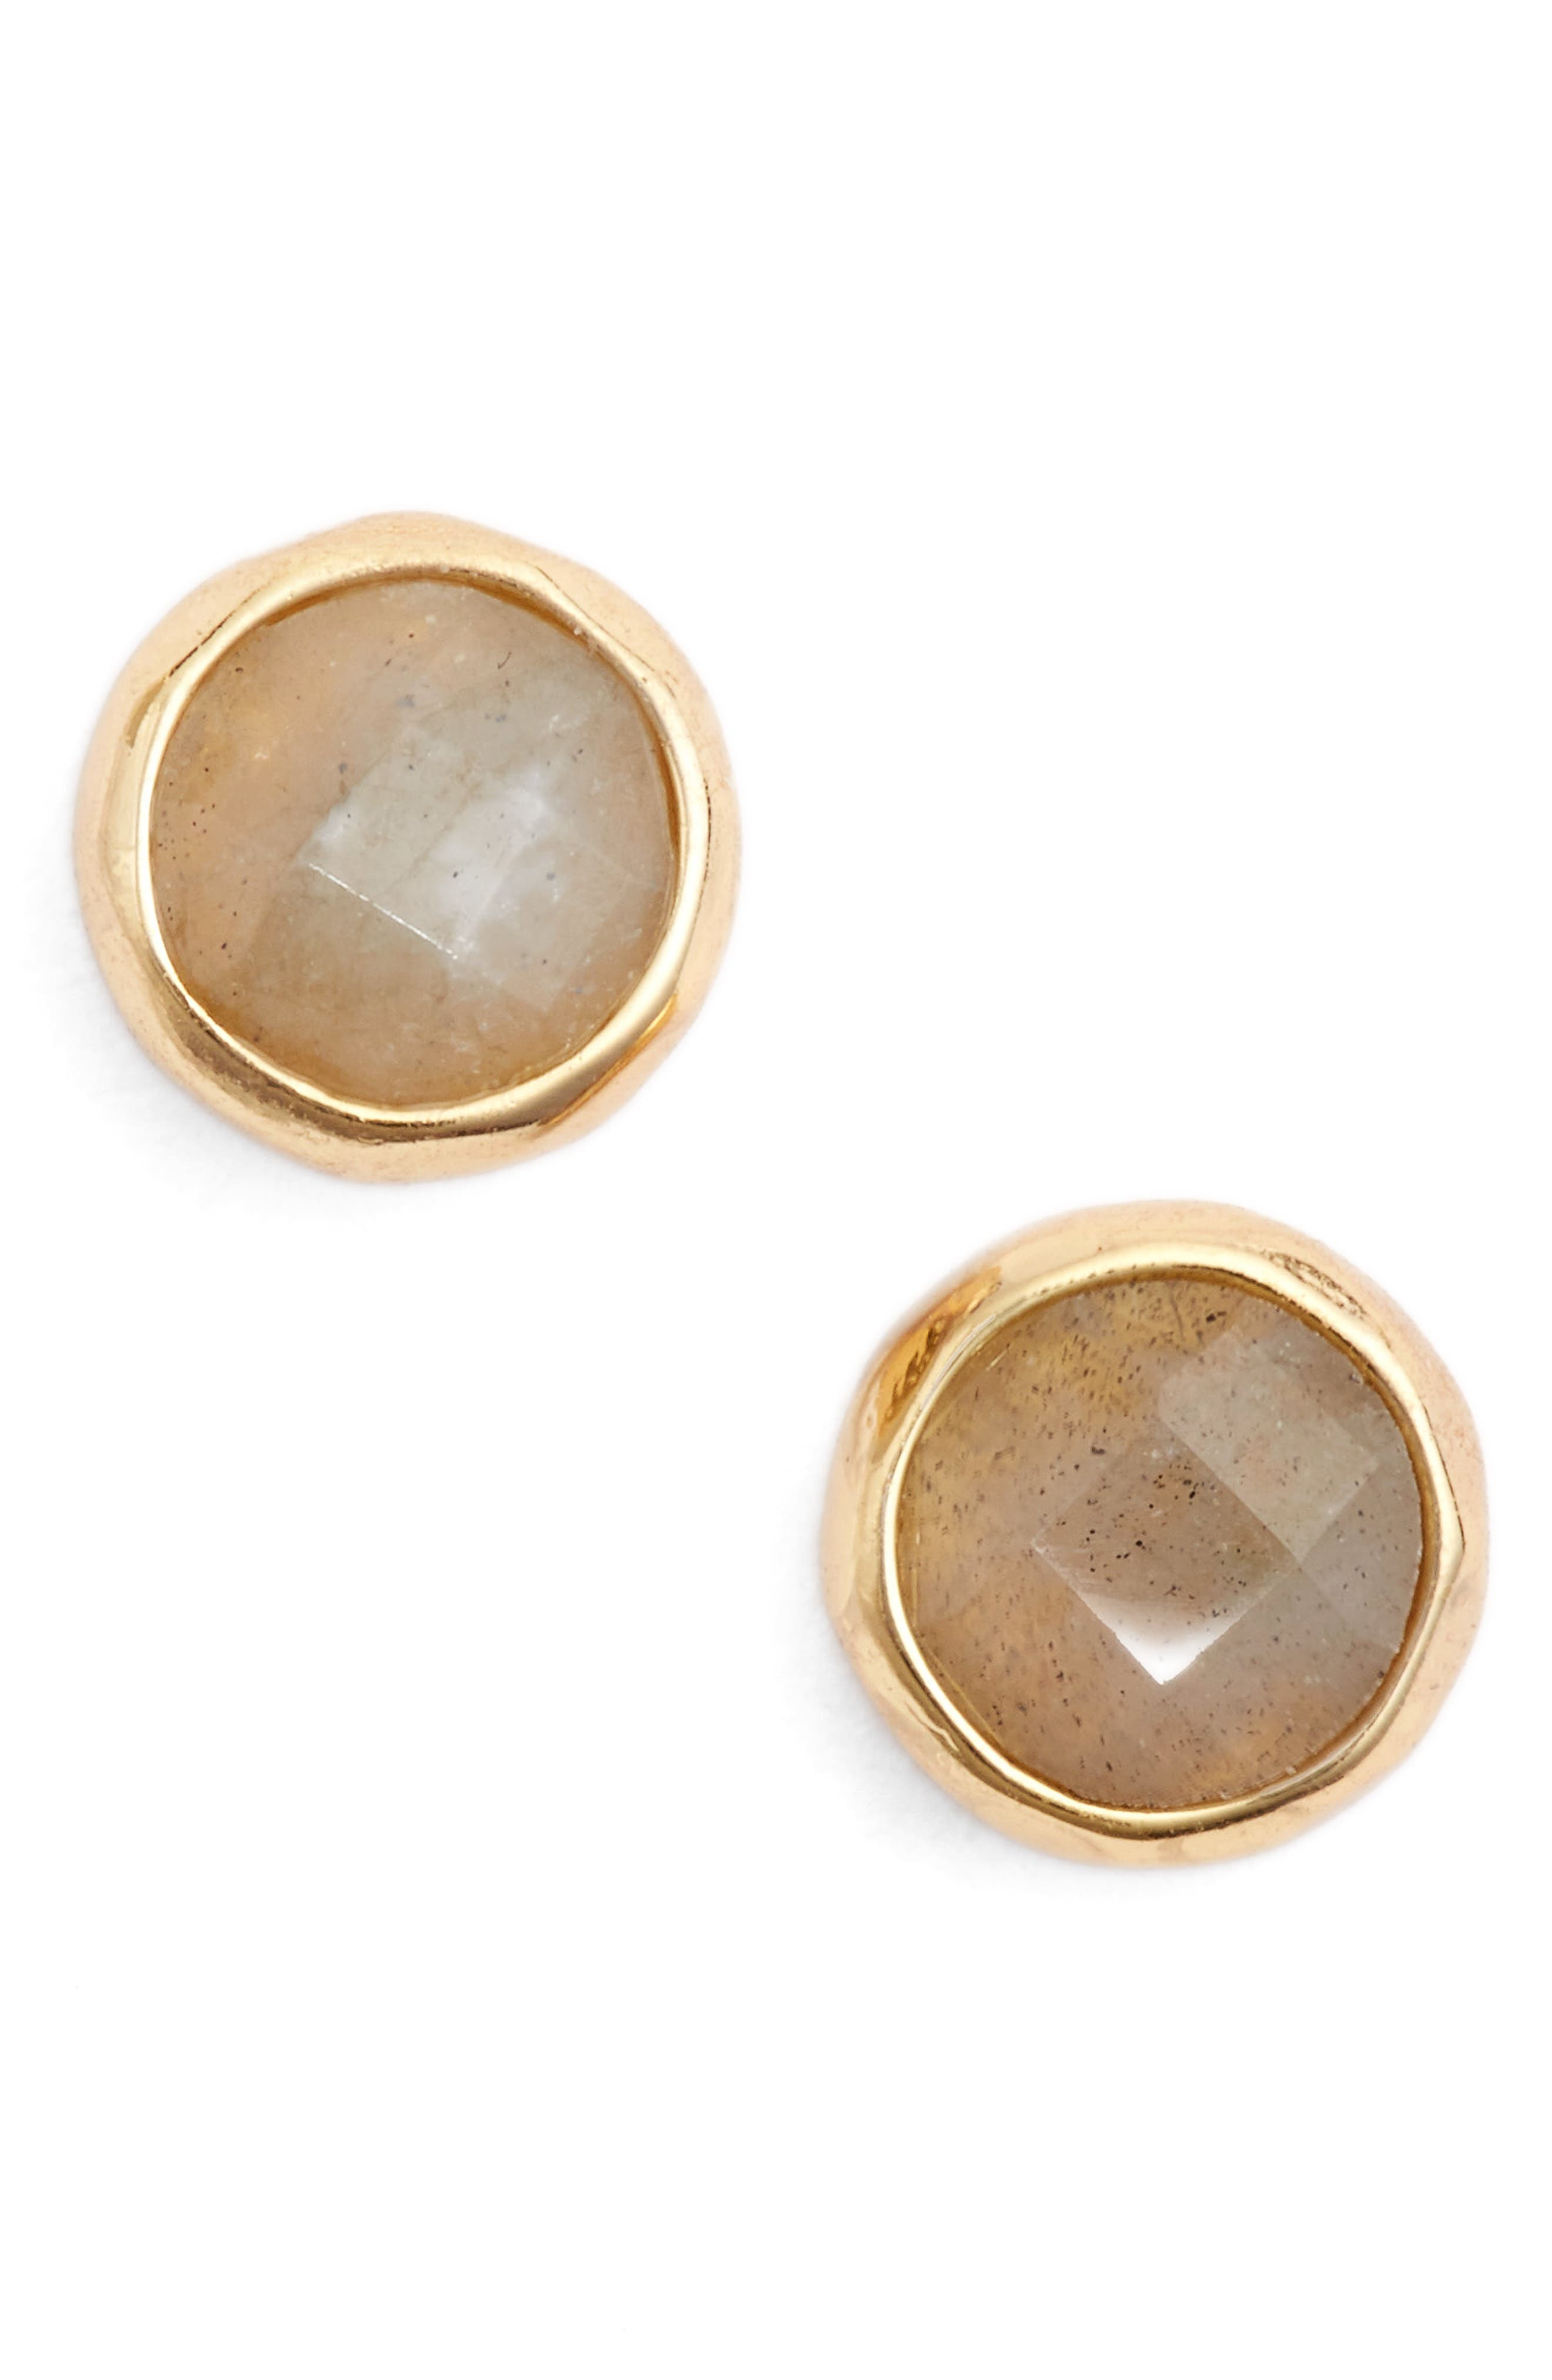 Balance Stud Earrings,                         Main,                         color, Labradorite/ Gold